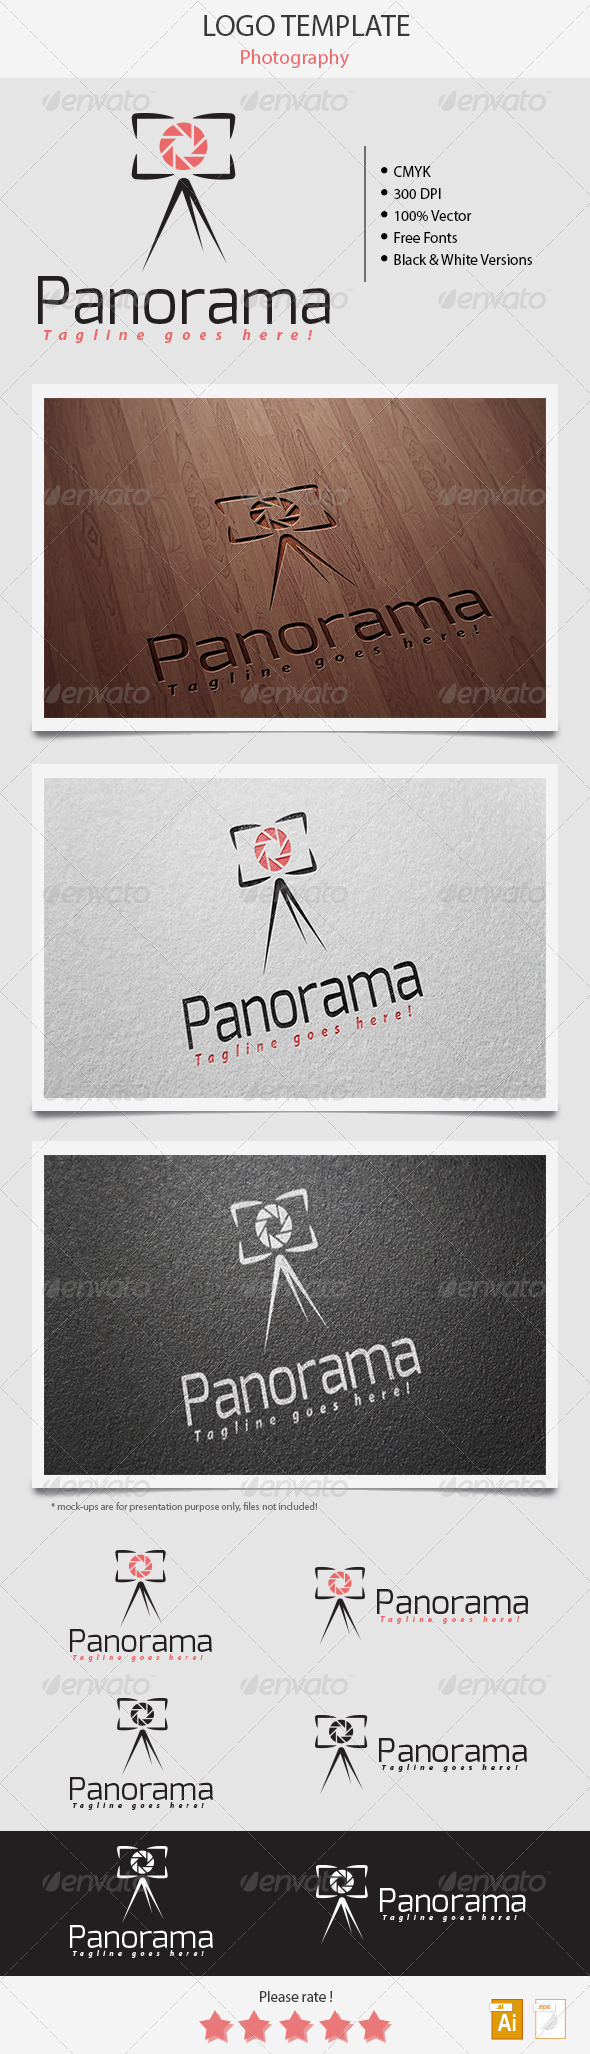 GraphicRiver Panorama Photography Logo 5412267